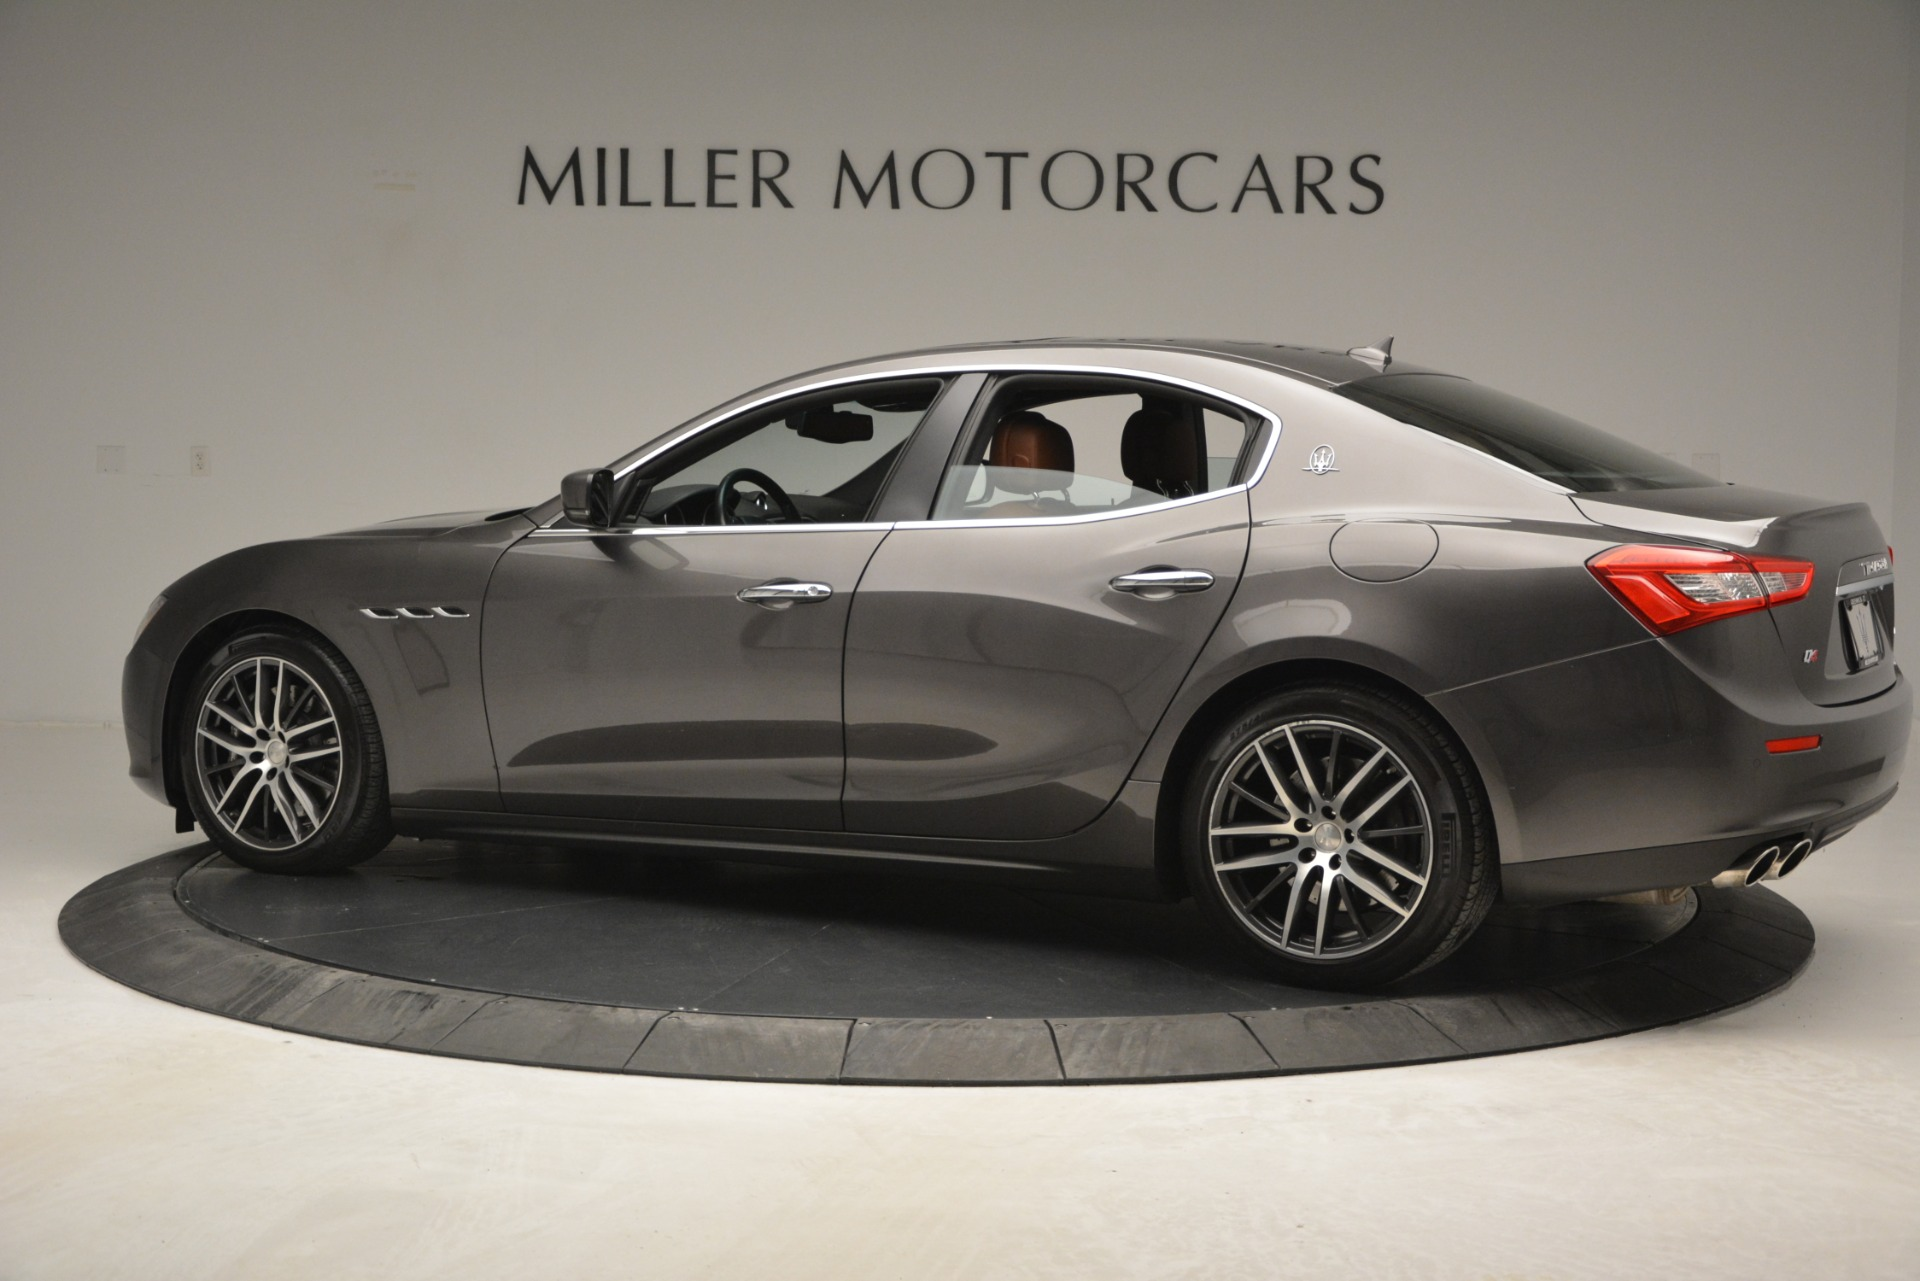 Used 2015 Maserati Ghibli S Q4 For Sale In Greenwich, CT. Alfa Romeo of Greenwich, 7483 2941_p4